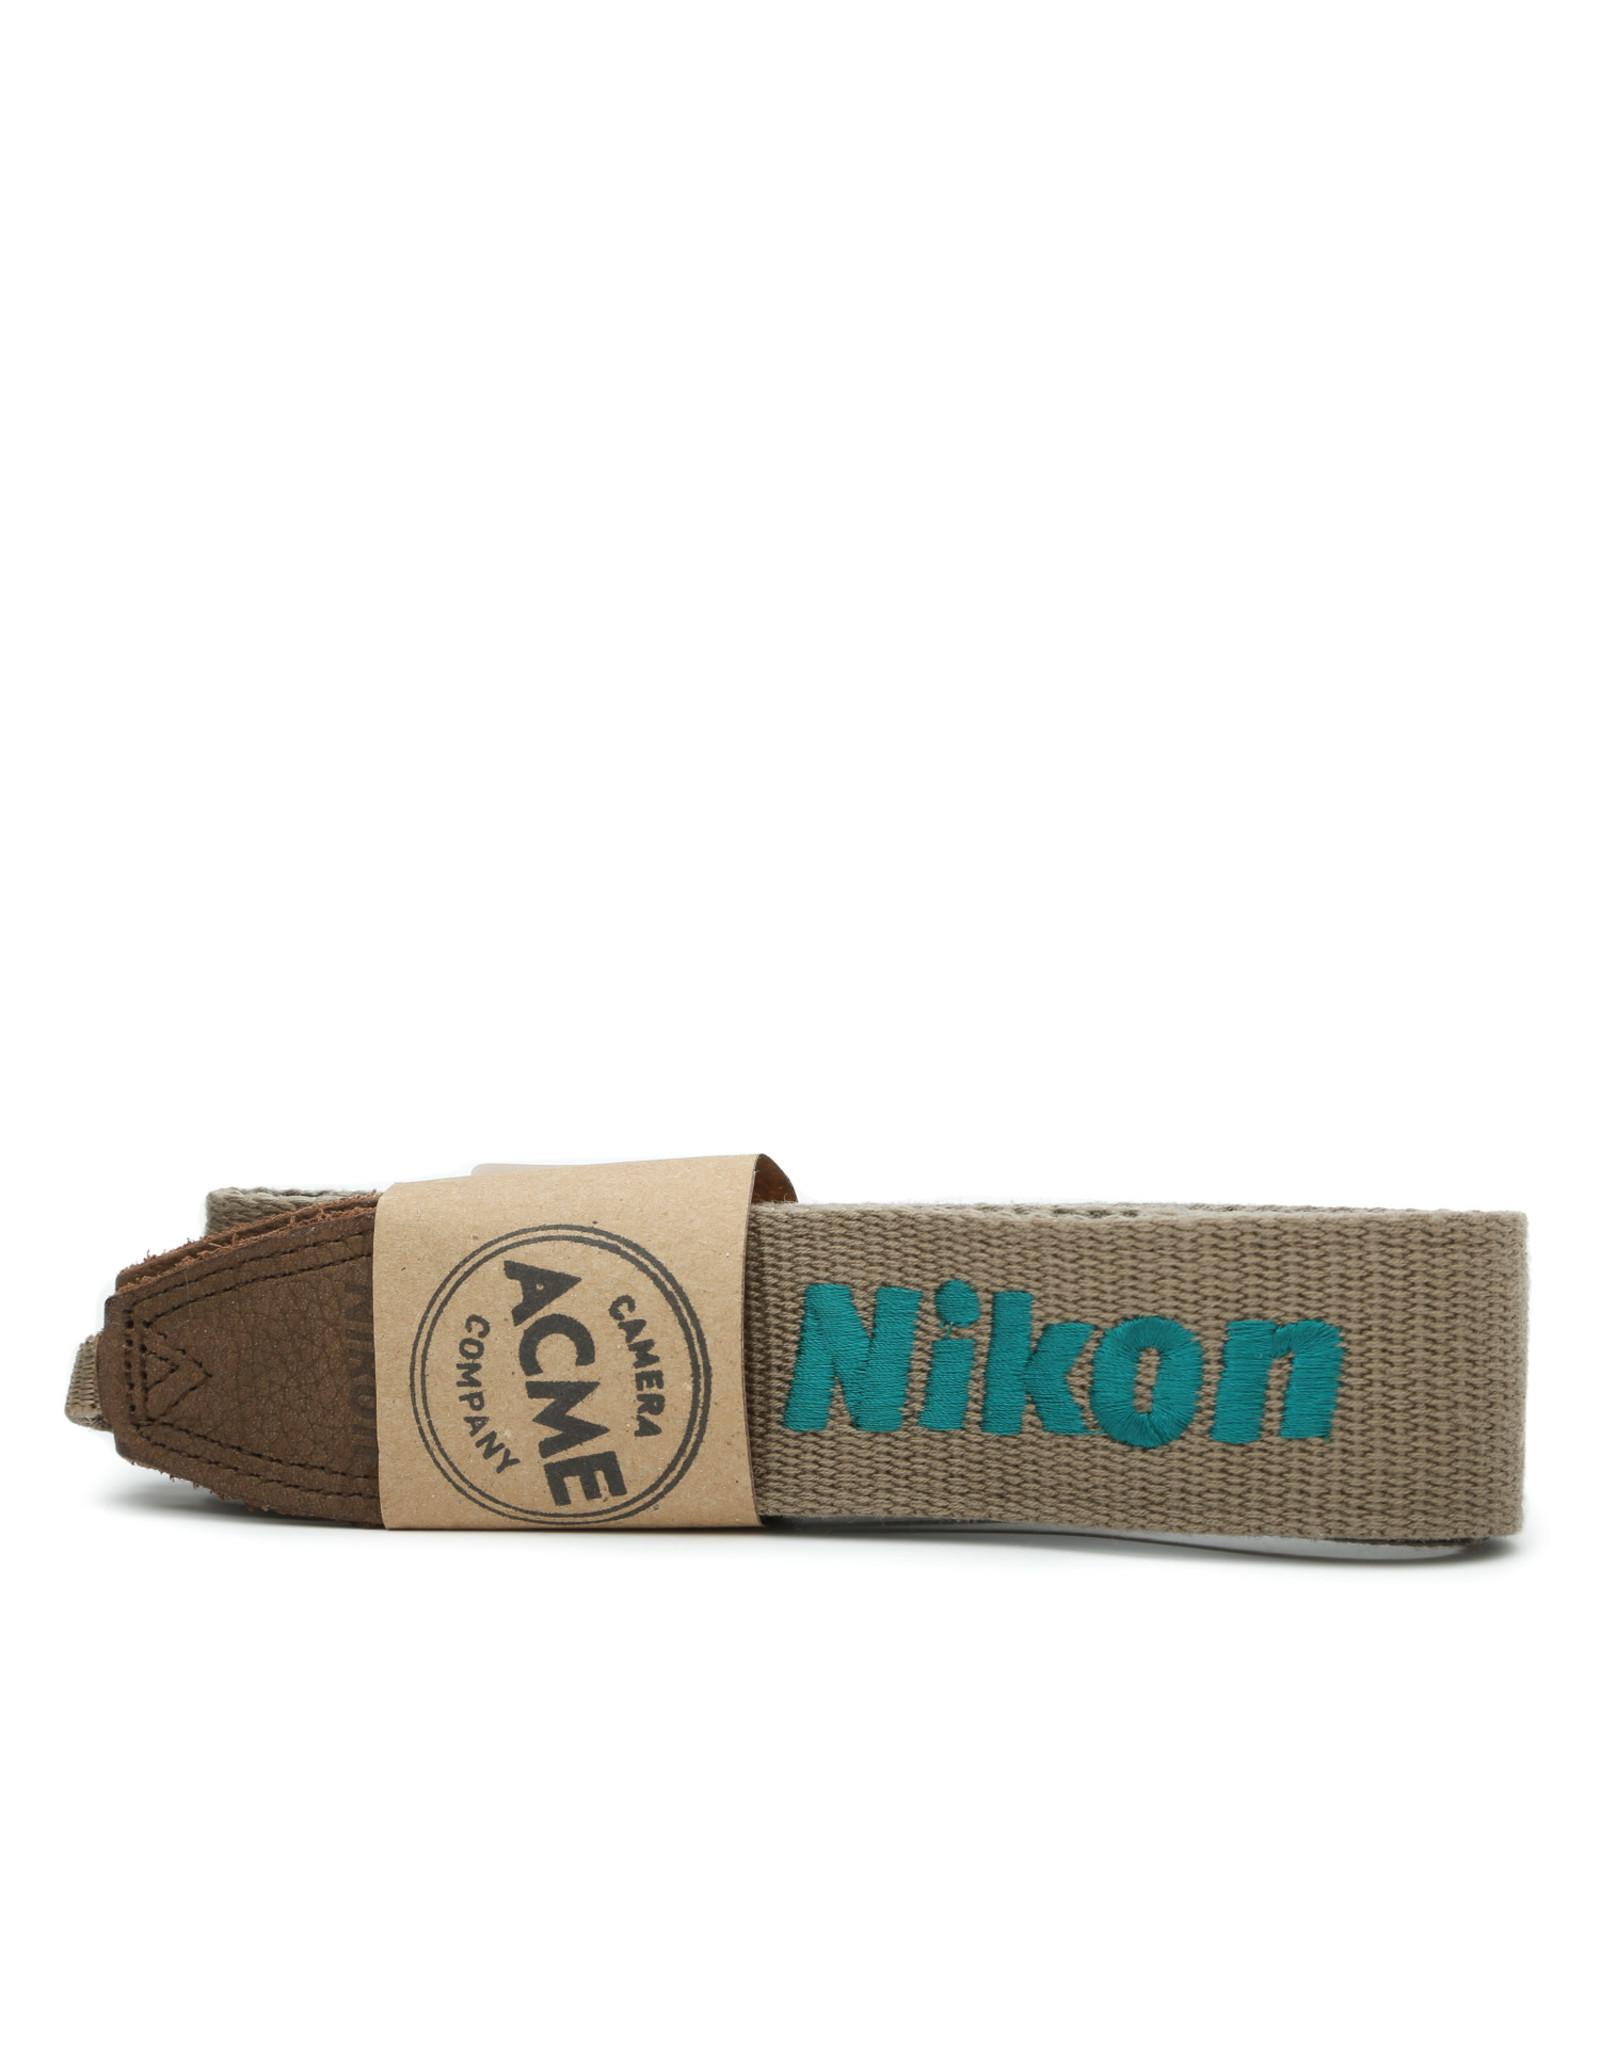 Nikon Nikon Tan and Teal Original Camera Strap